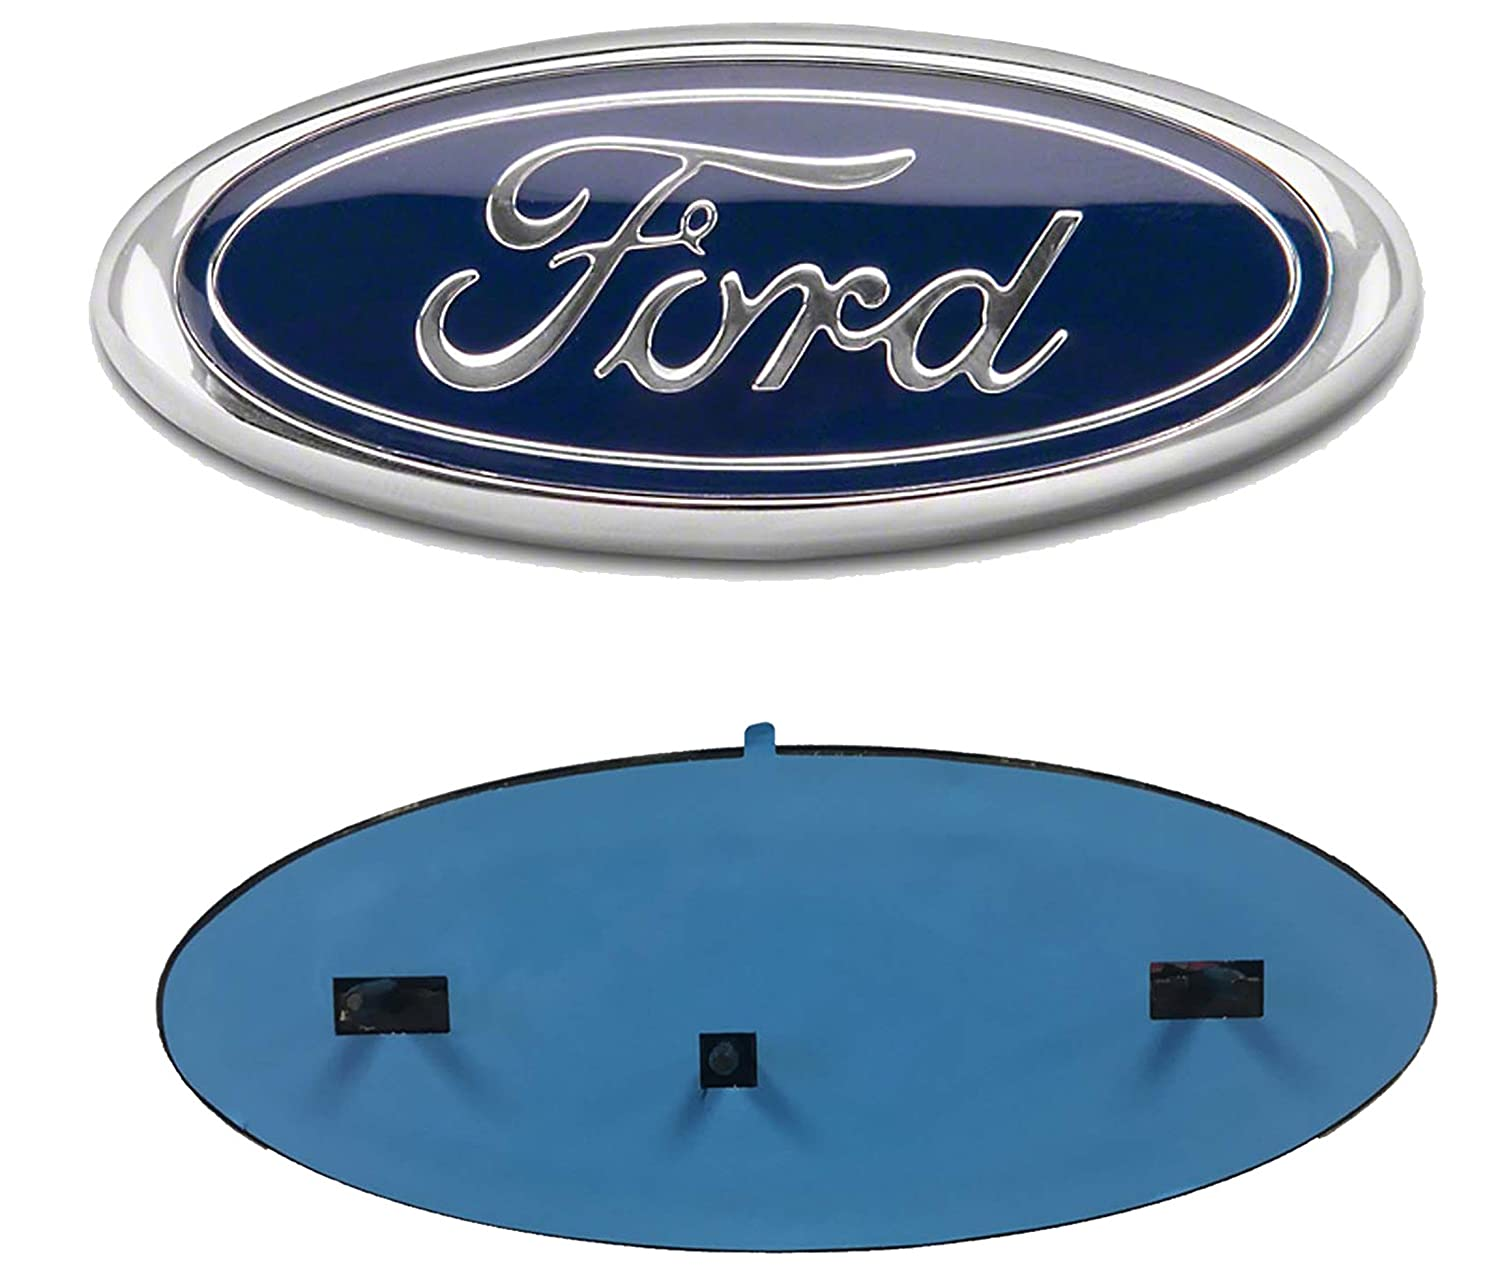 2005-2014 Ford F150 Dark Blue Oval 9 X 3.5 Front Grille Replacement Badge Emblem Medallion Name Plate Enterprises